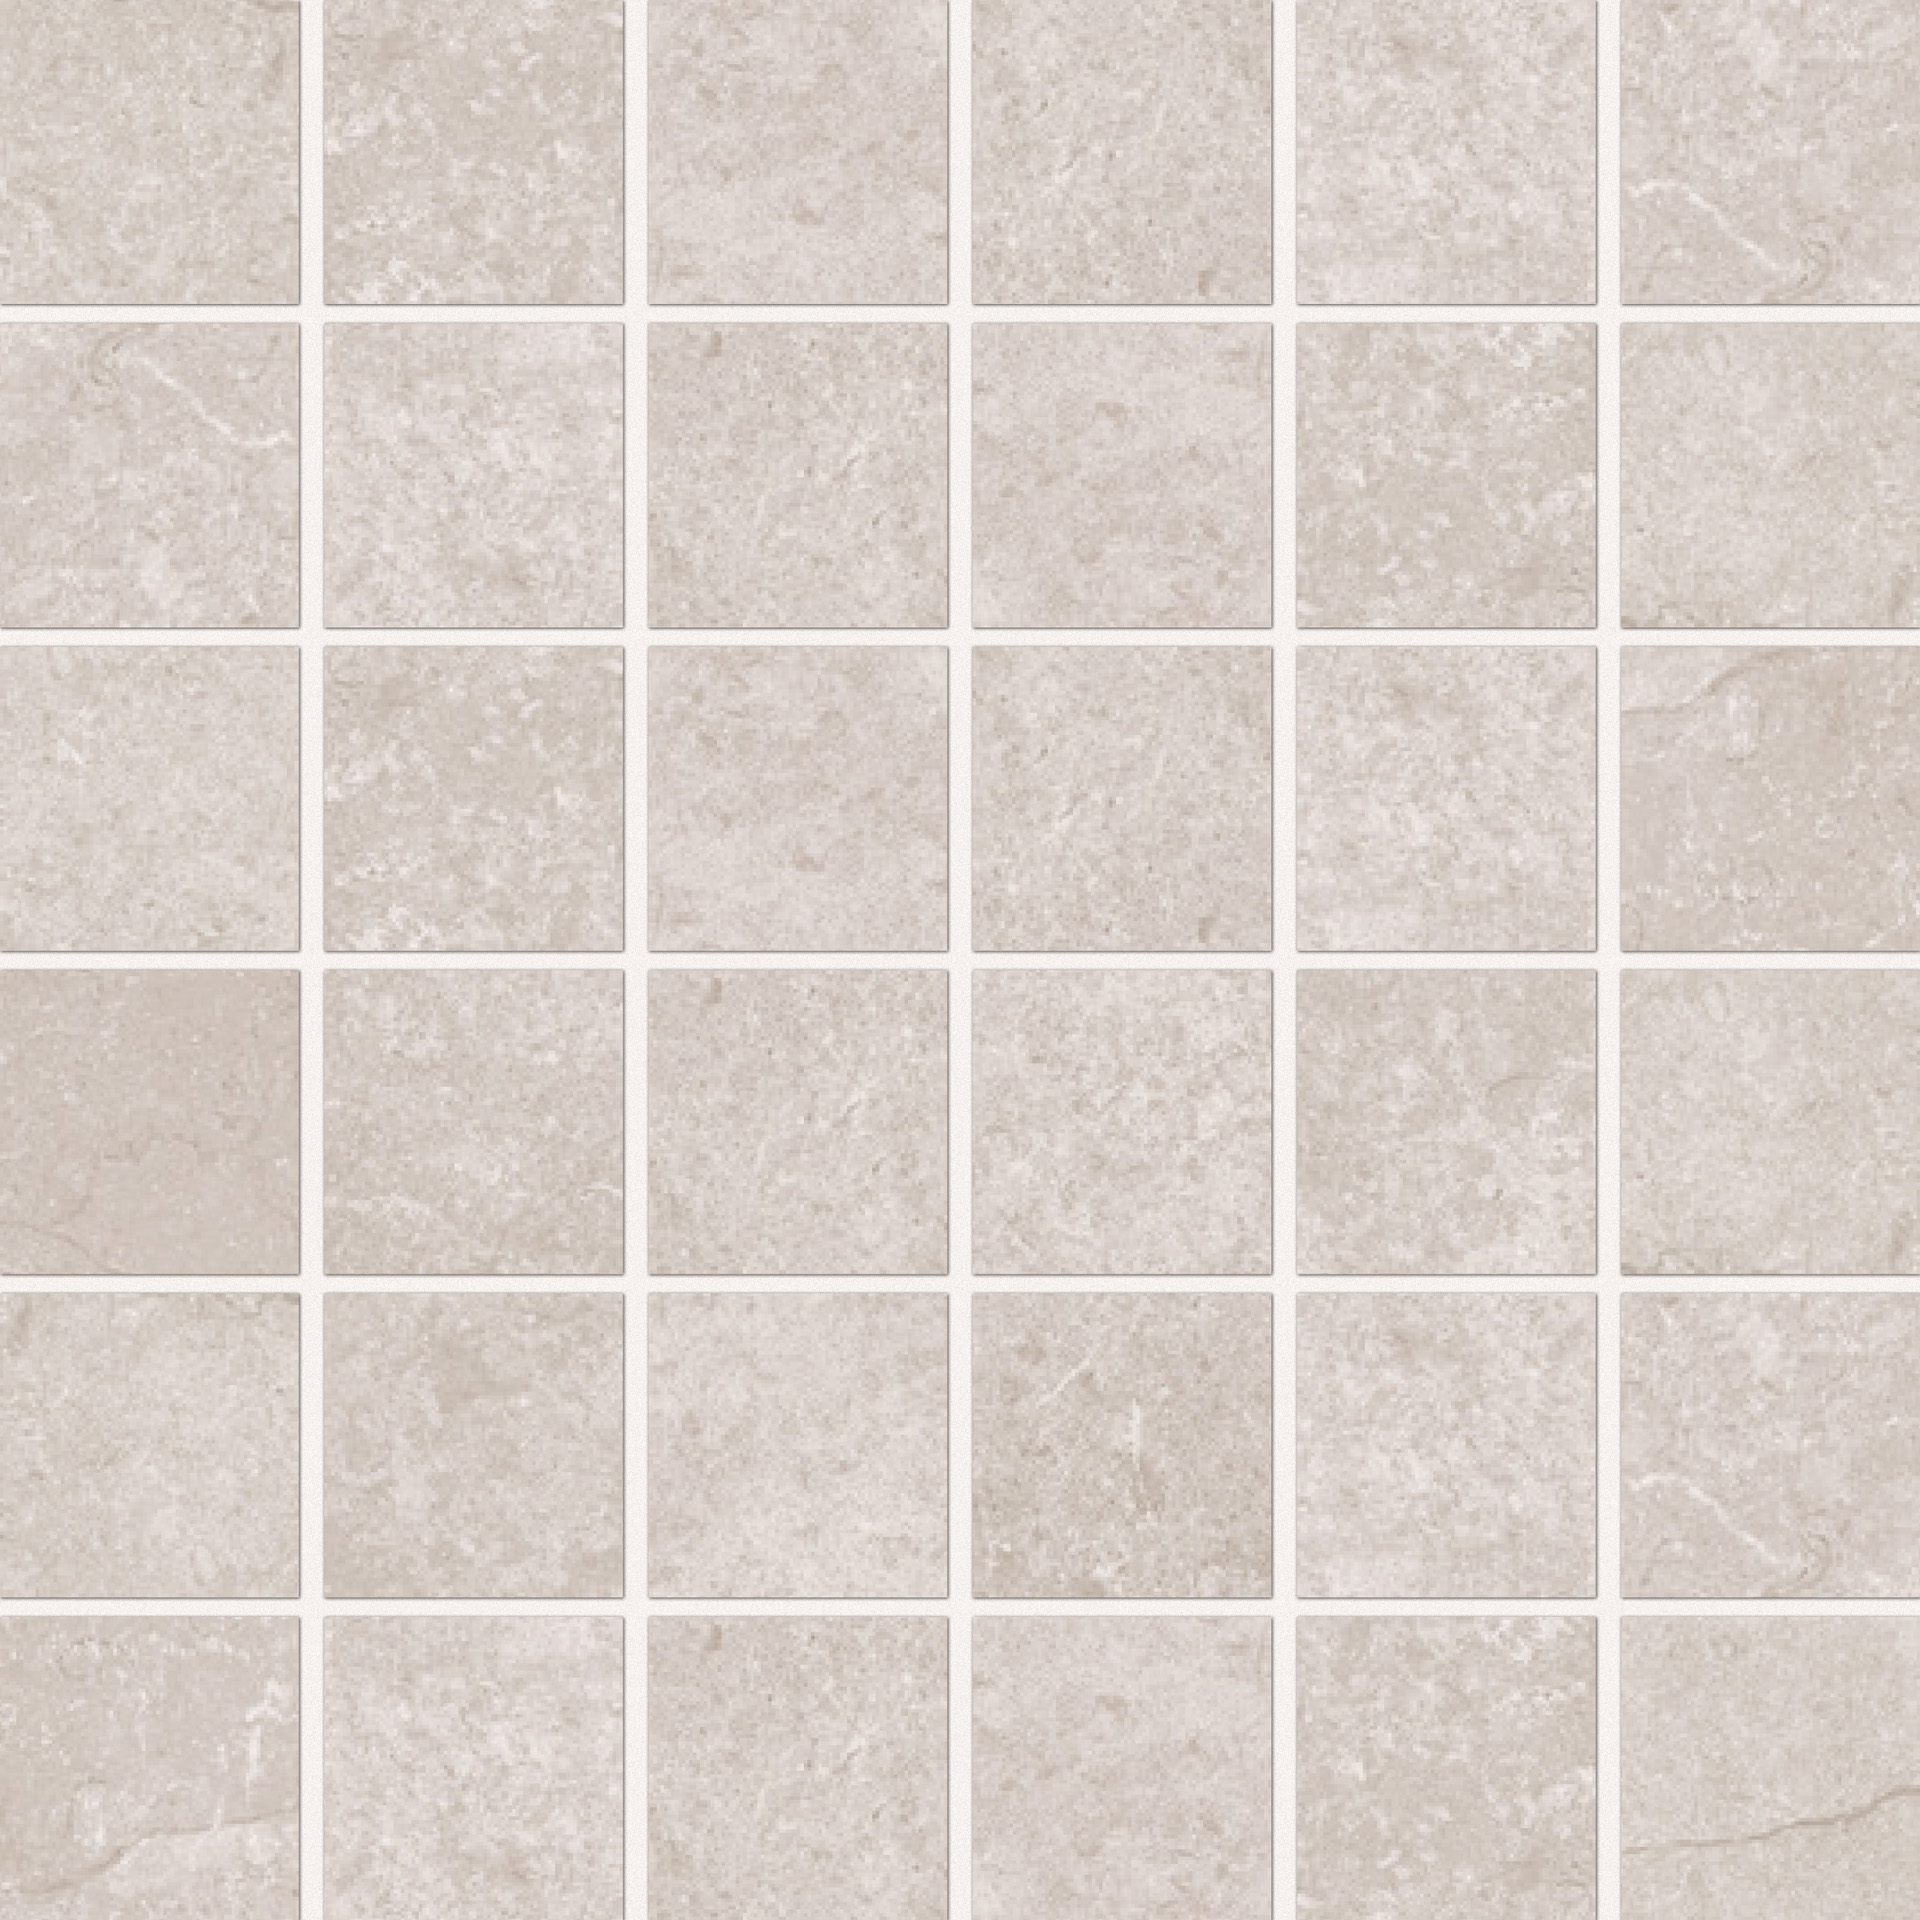 Vallelunga Lit Beige Mosaico Satin Finish Керамогранит